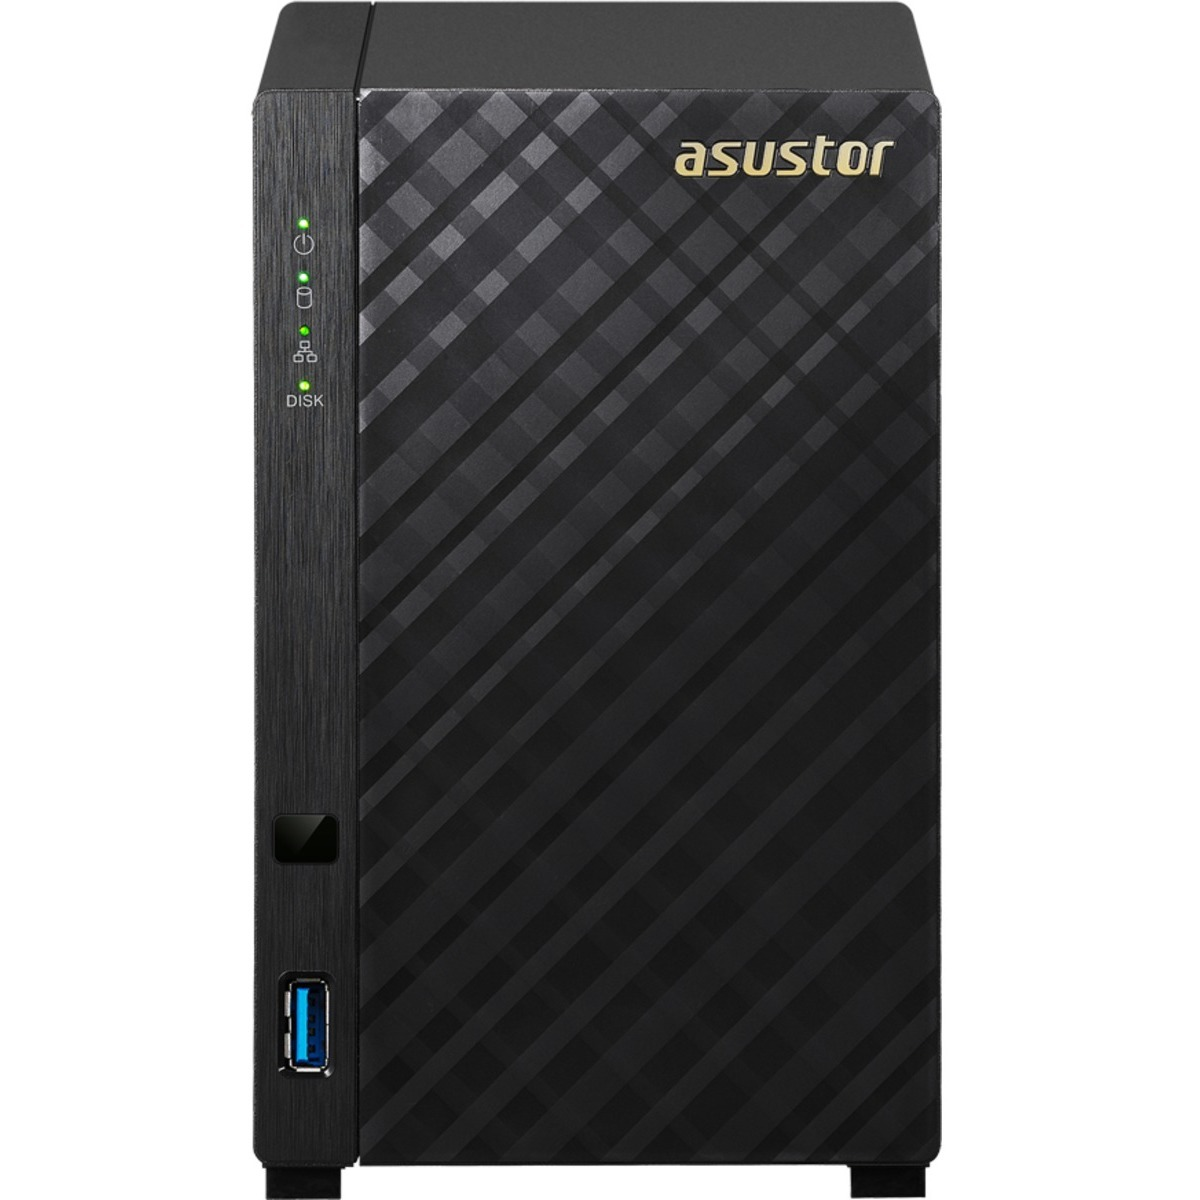 buy $391 ASUSTOR AS1002T v2 4tb Desktop NAS - Network Attached Storage Device 1x4000gb Seagate EXOS ST4000NM000A 3.5 7200rpm SATA 6Gb/s HDD ENTERPRISE Class Drives Installed - Burn-In Tested - nas headquarters buy network attached storage server device das new raid-5 free shipping usa holiday new year clearance sale AS1002T v2